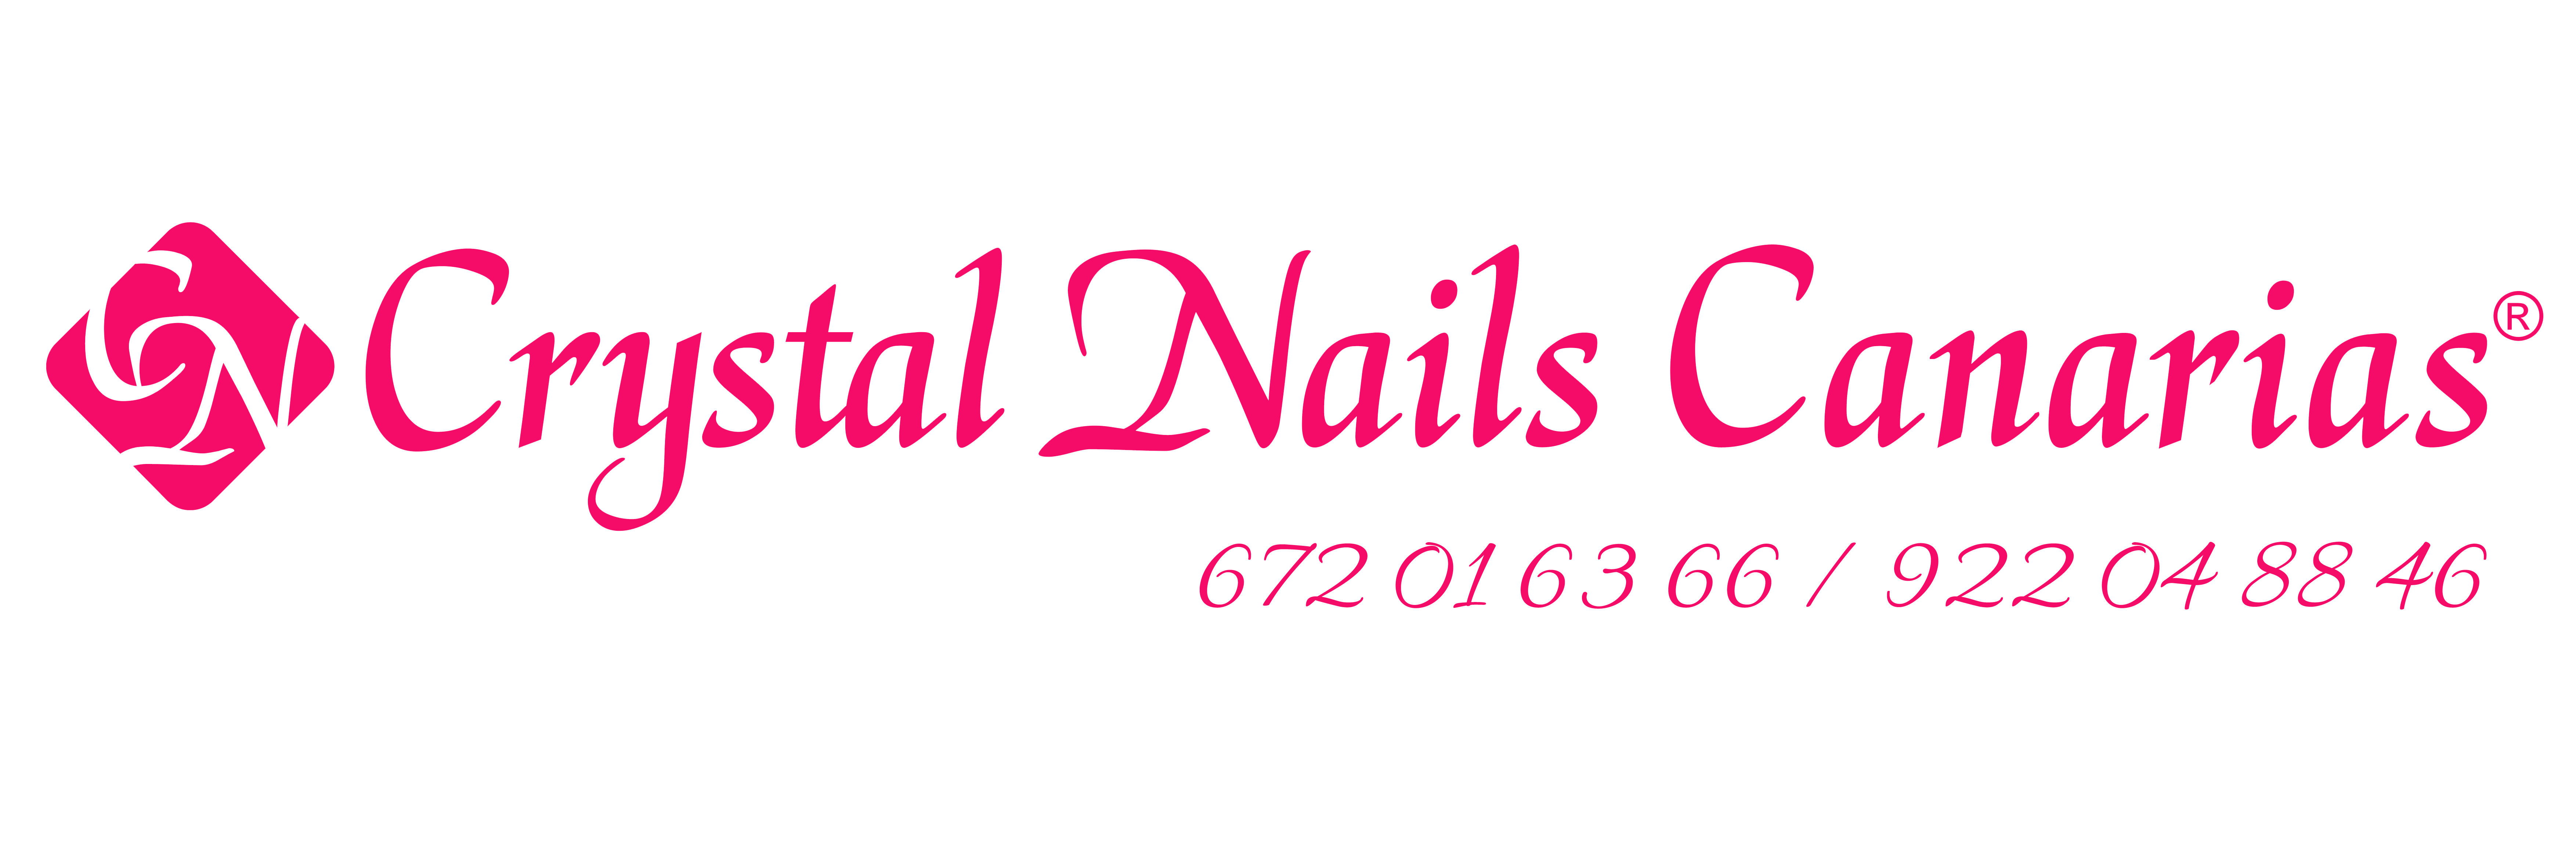 Crystal nails Canarias Logo